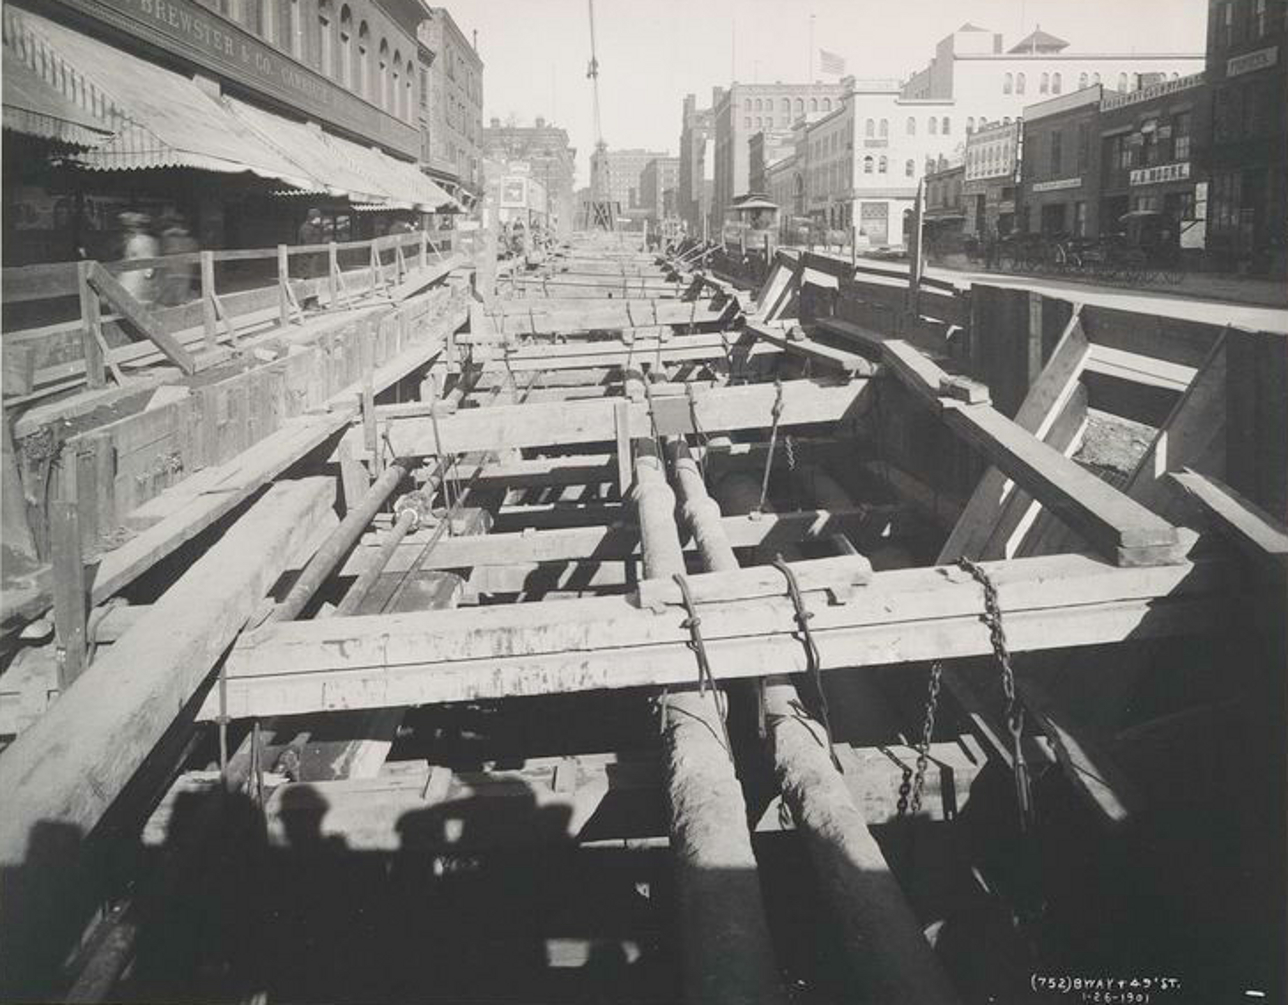 Old New York In Photos #23 - Subway Excavation Along Broadway & 49th St. 1901